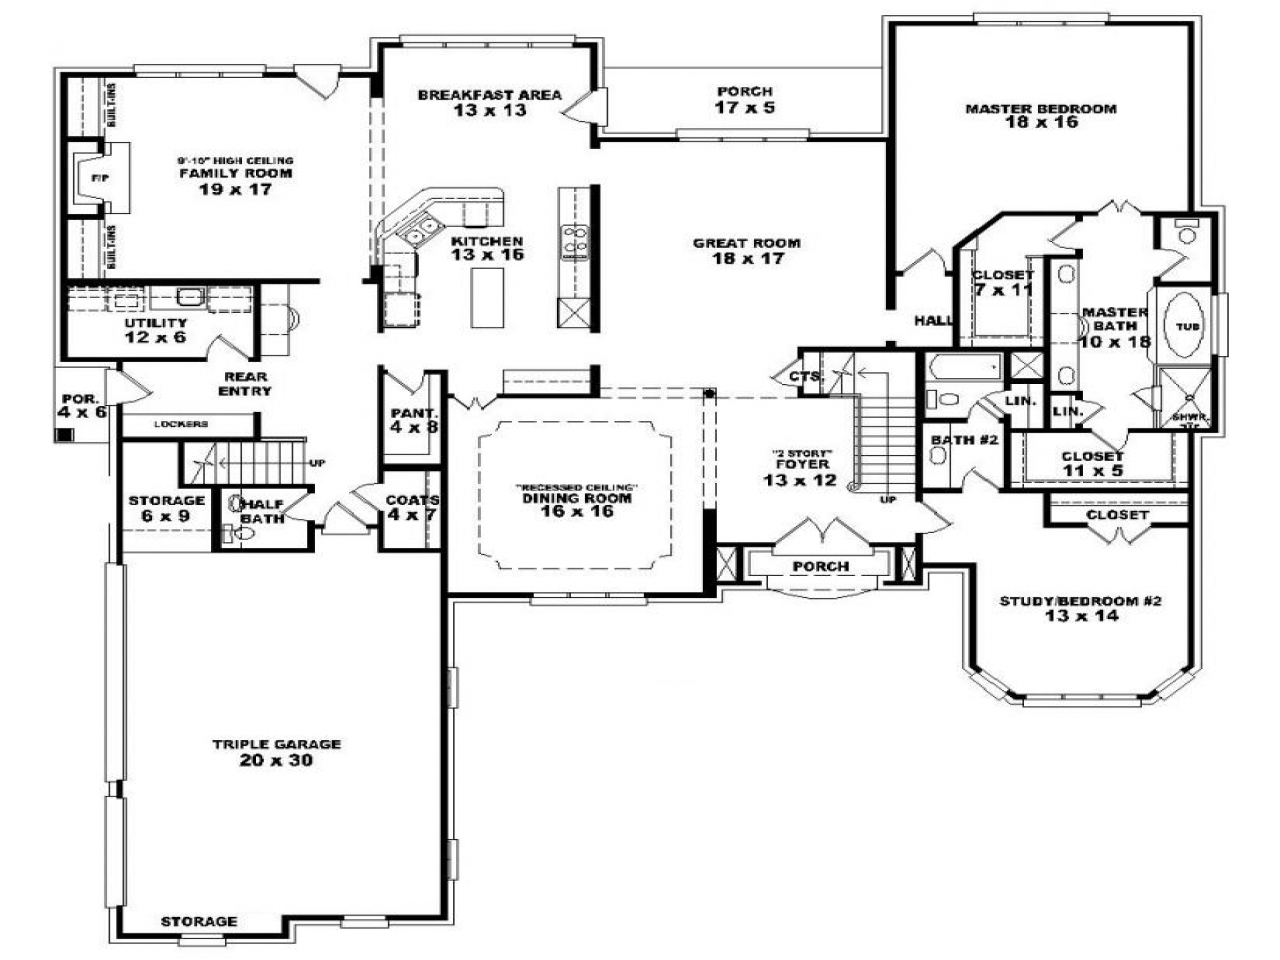 4 bedroom one story house plans our two bedroom story for One story 4 bedroom house floor plans